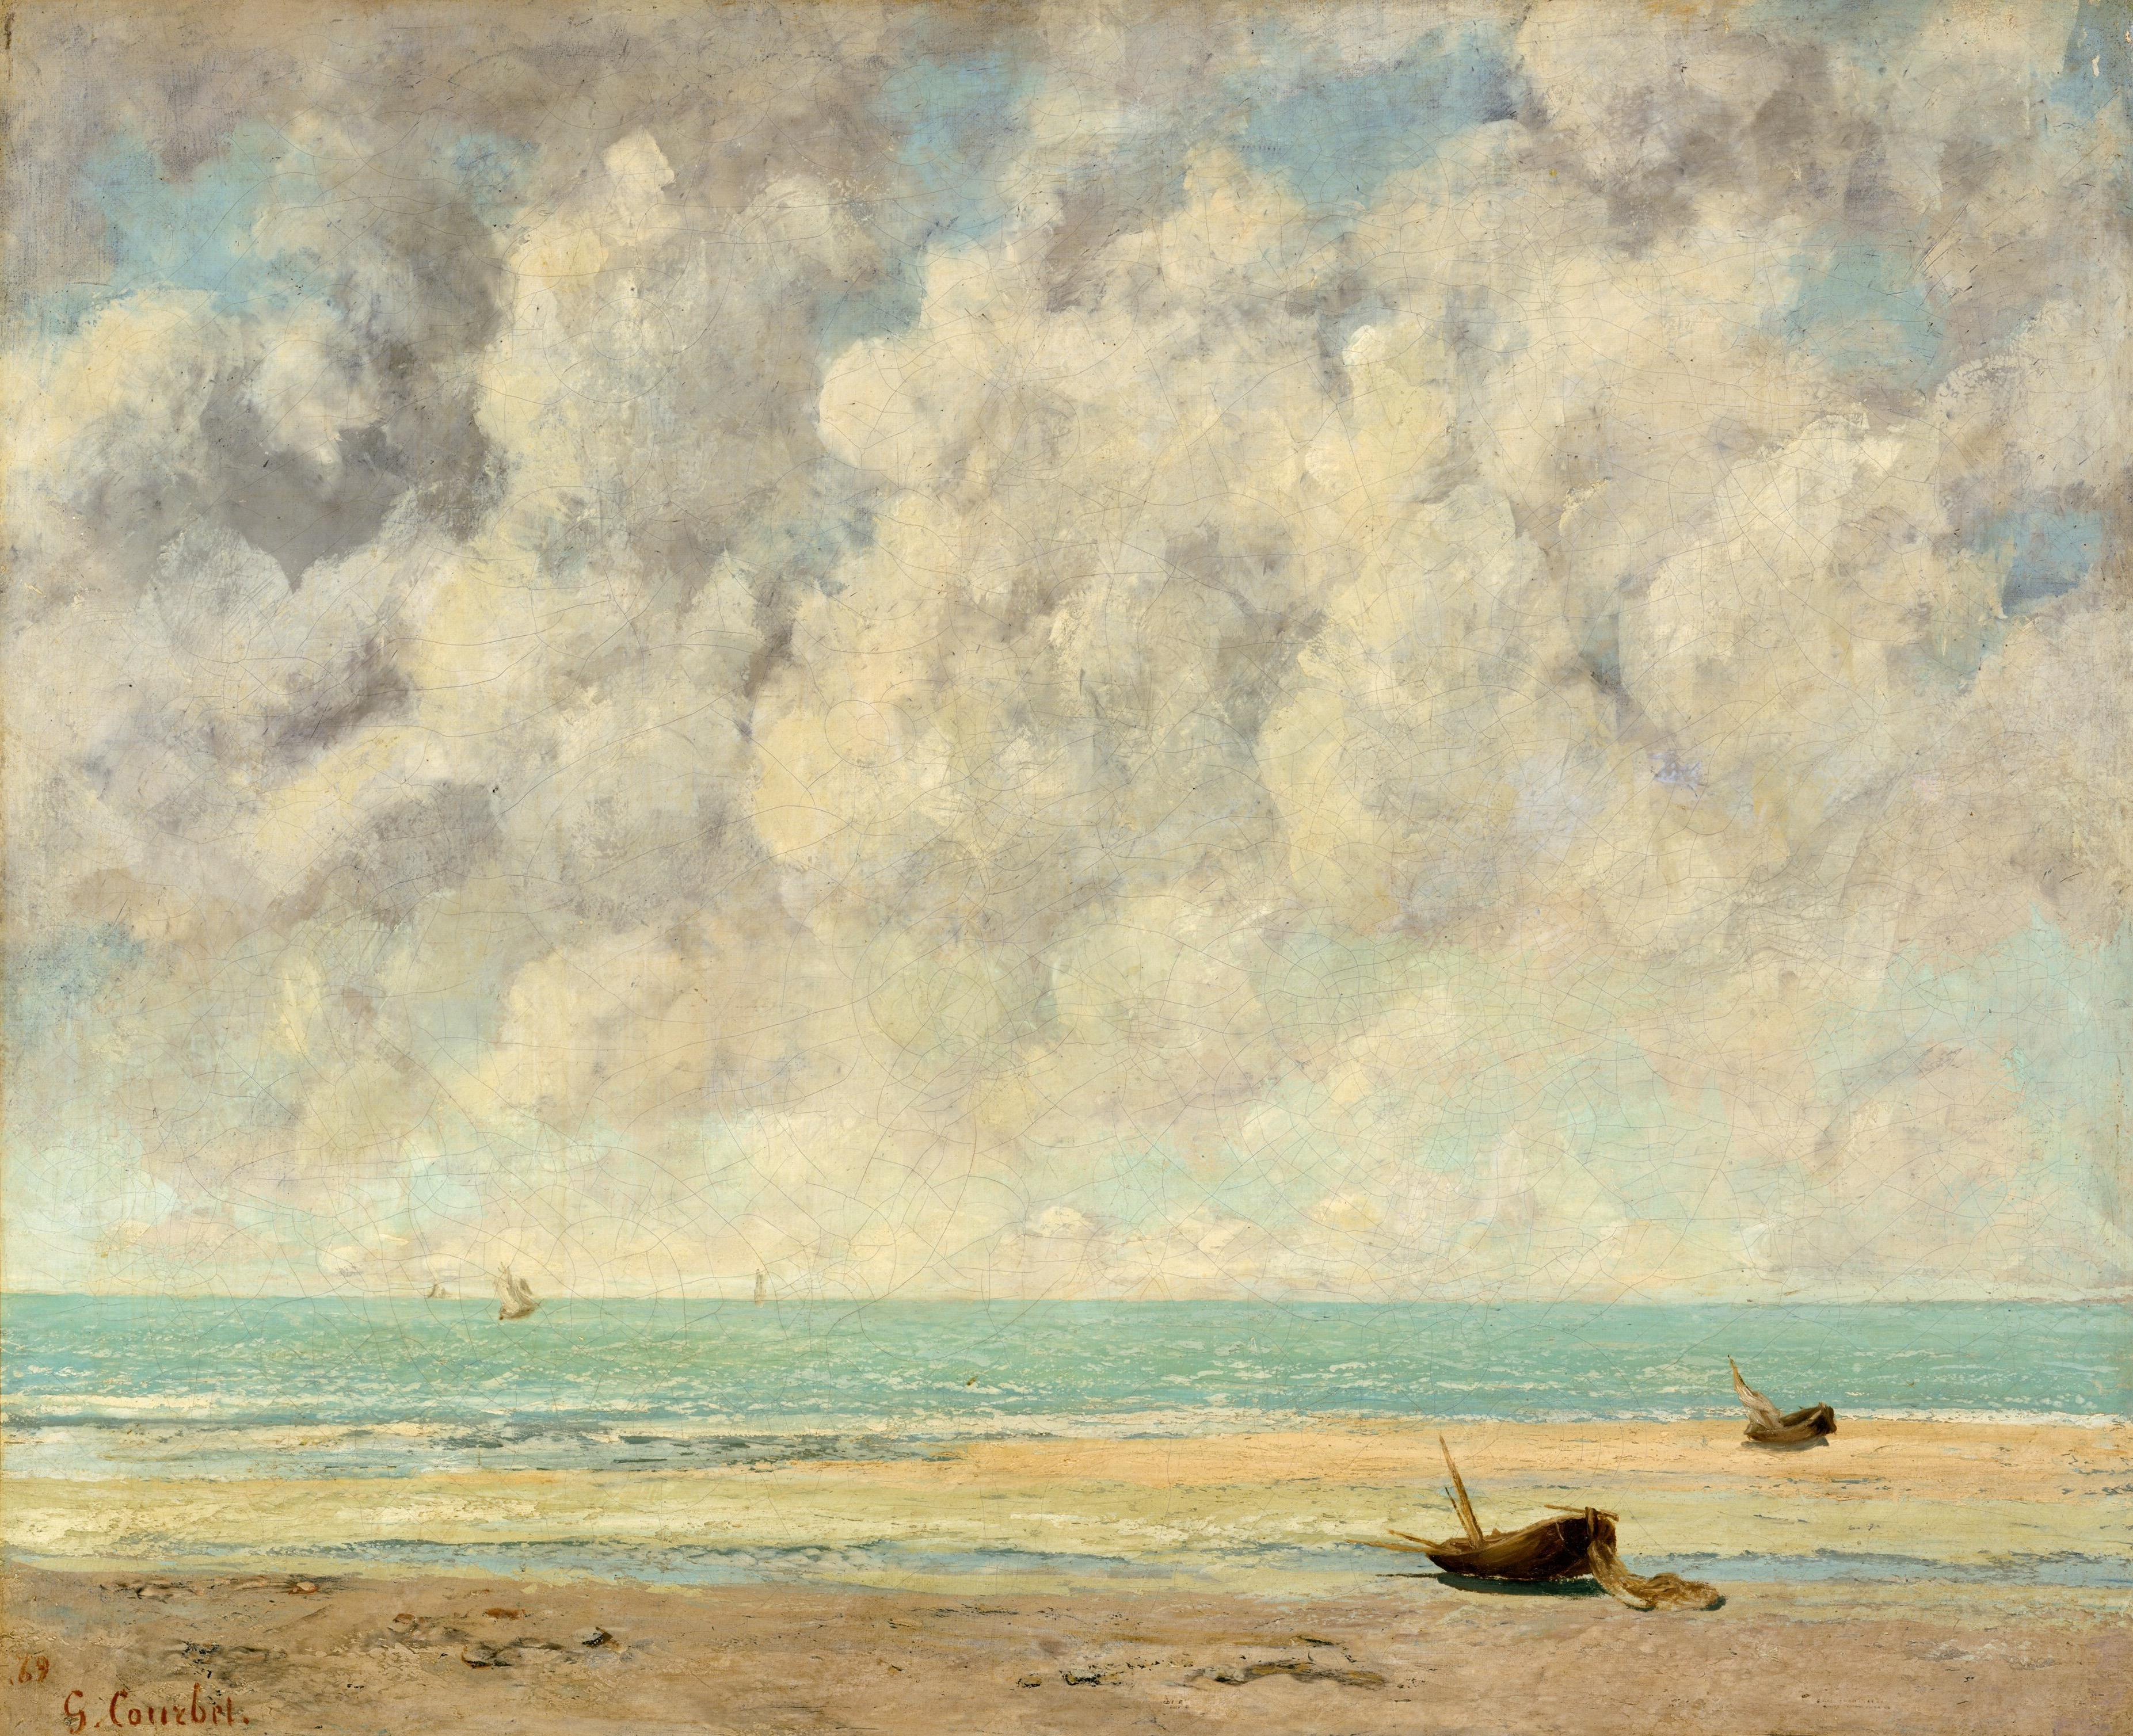 The Calm Sea, by Gustav Courbet, 1869, by The Met